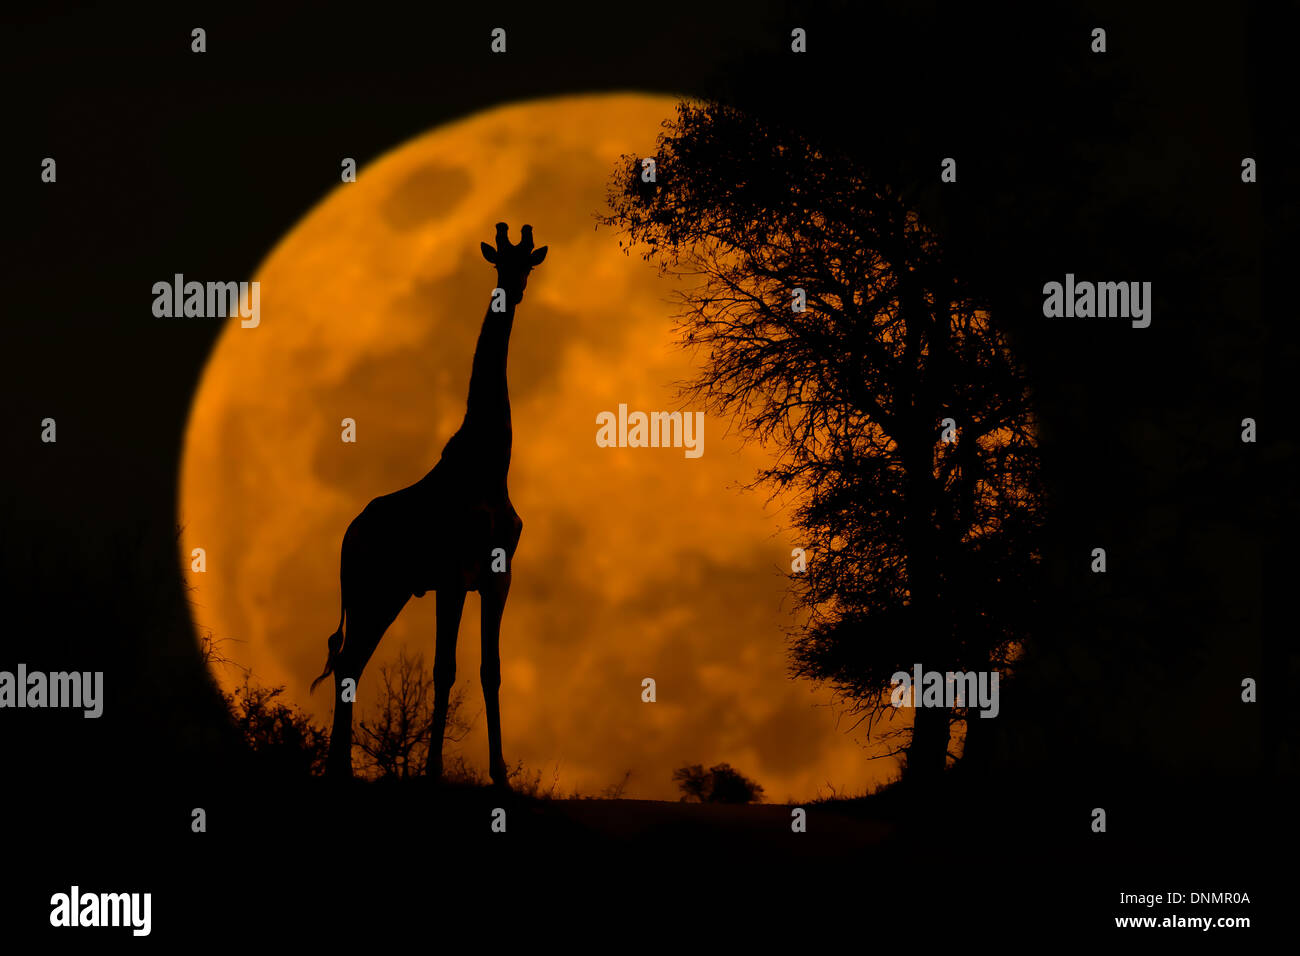 Giraffe silhouette captured at sunset in Kruger blended with a full moon captured when rising. - Stock Image